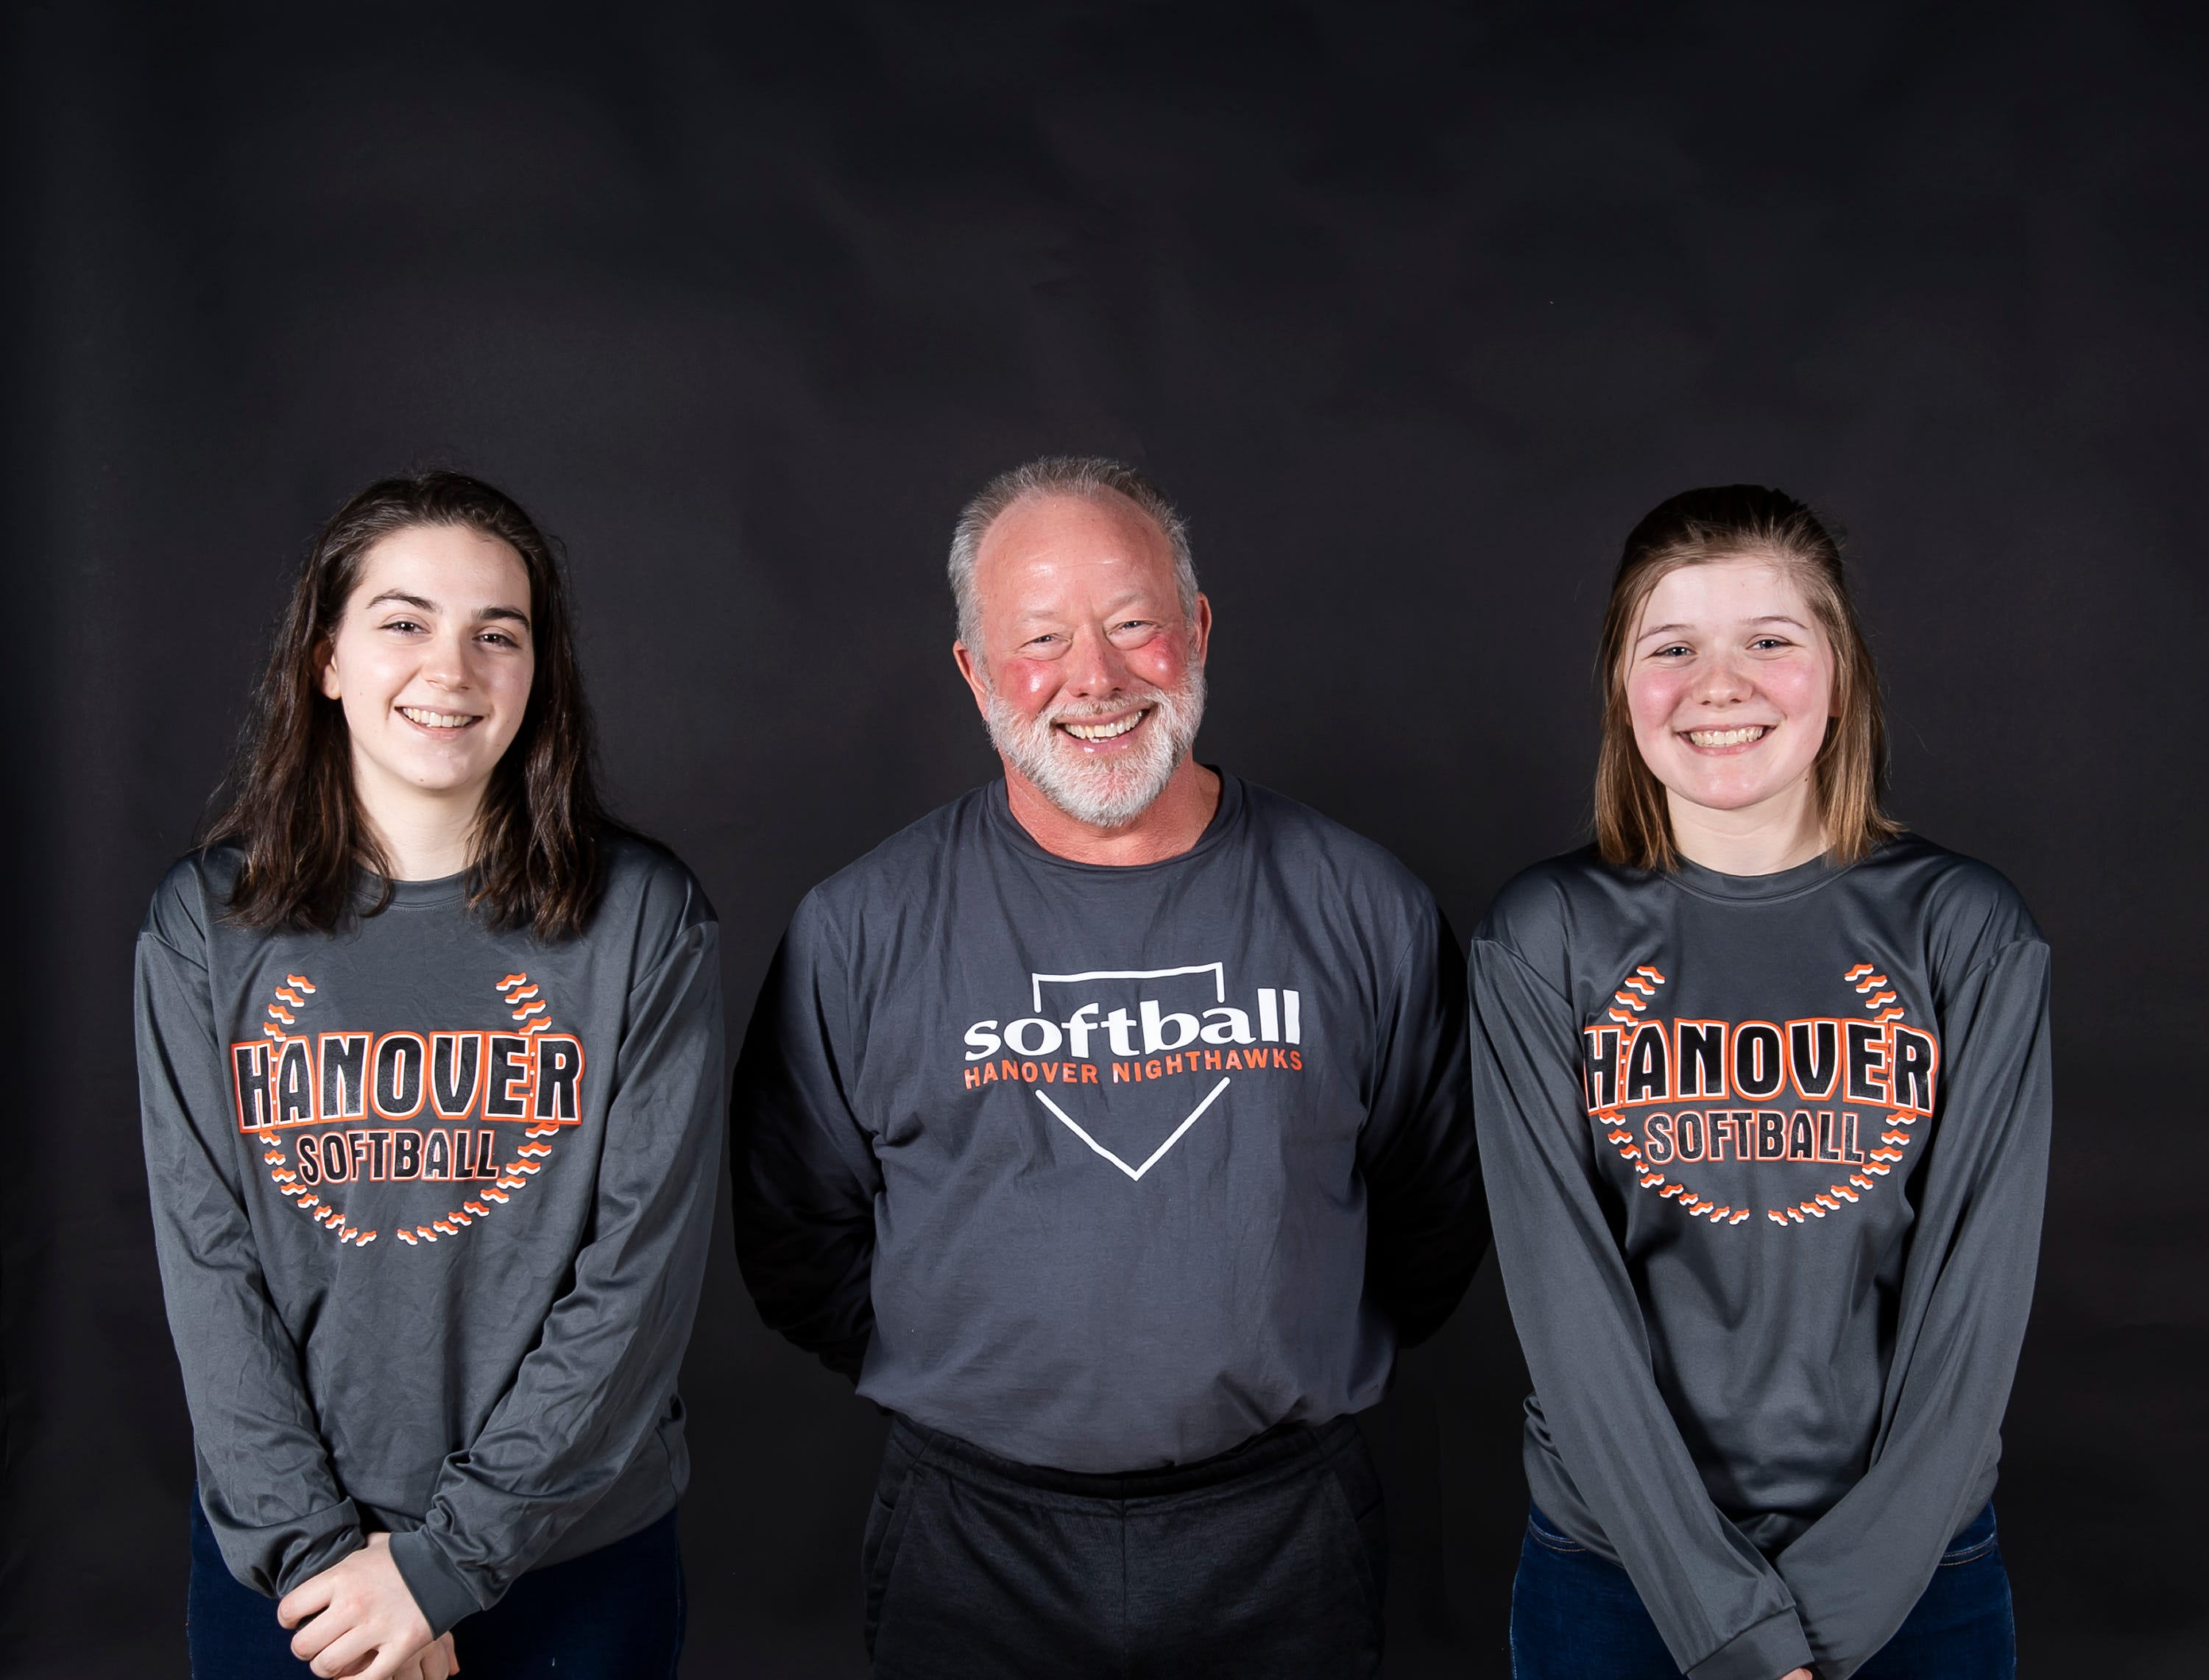 (From left) Hanover softball's Emily Hann, coach Henry Wardrop and Sierra Stevens pose in the GameTimePA photo booth during spring sports media day in York Sunday, March 10, 2019.